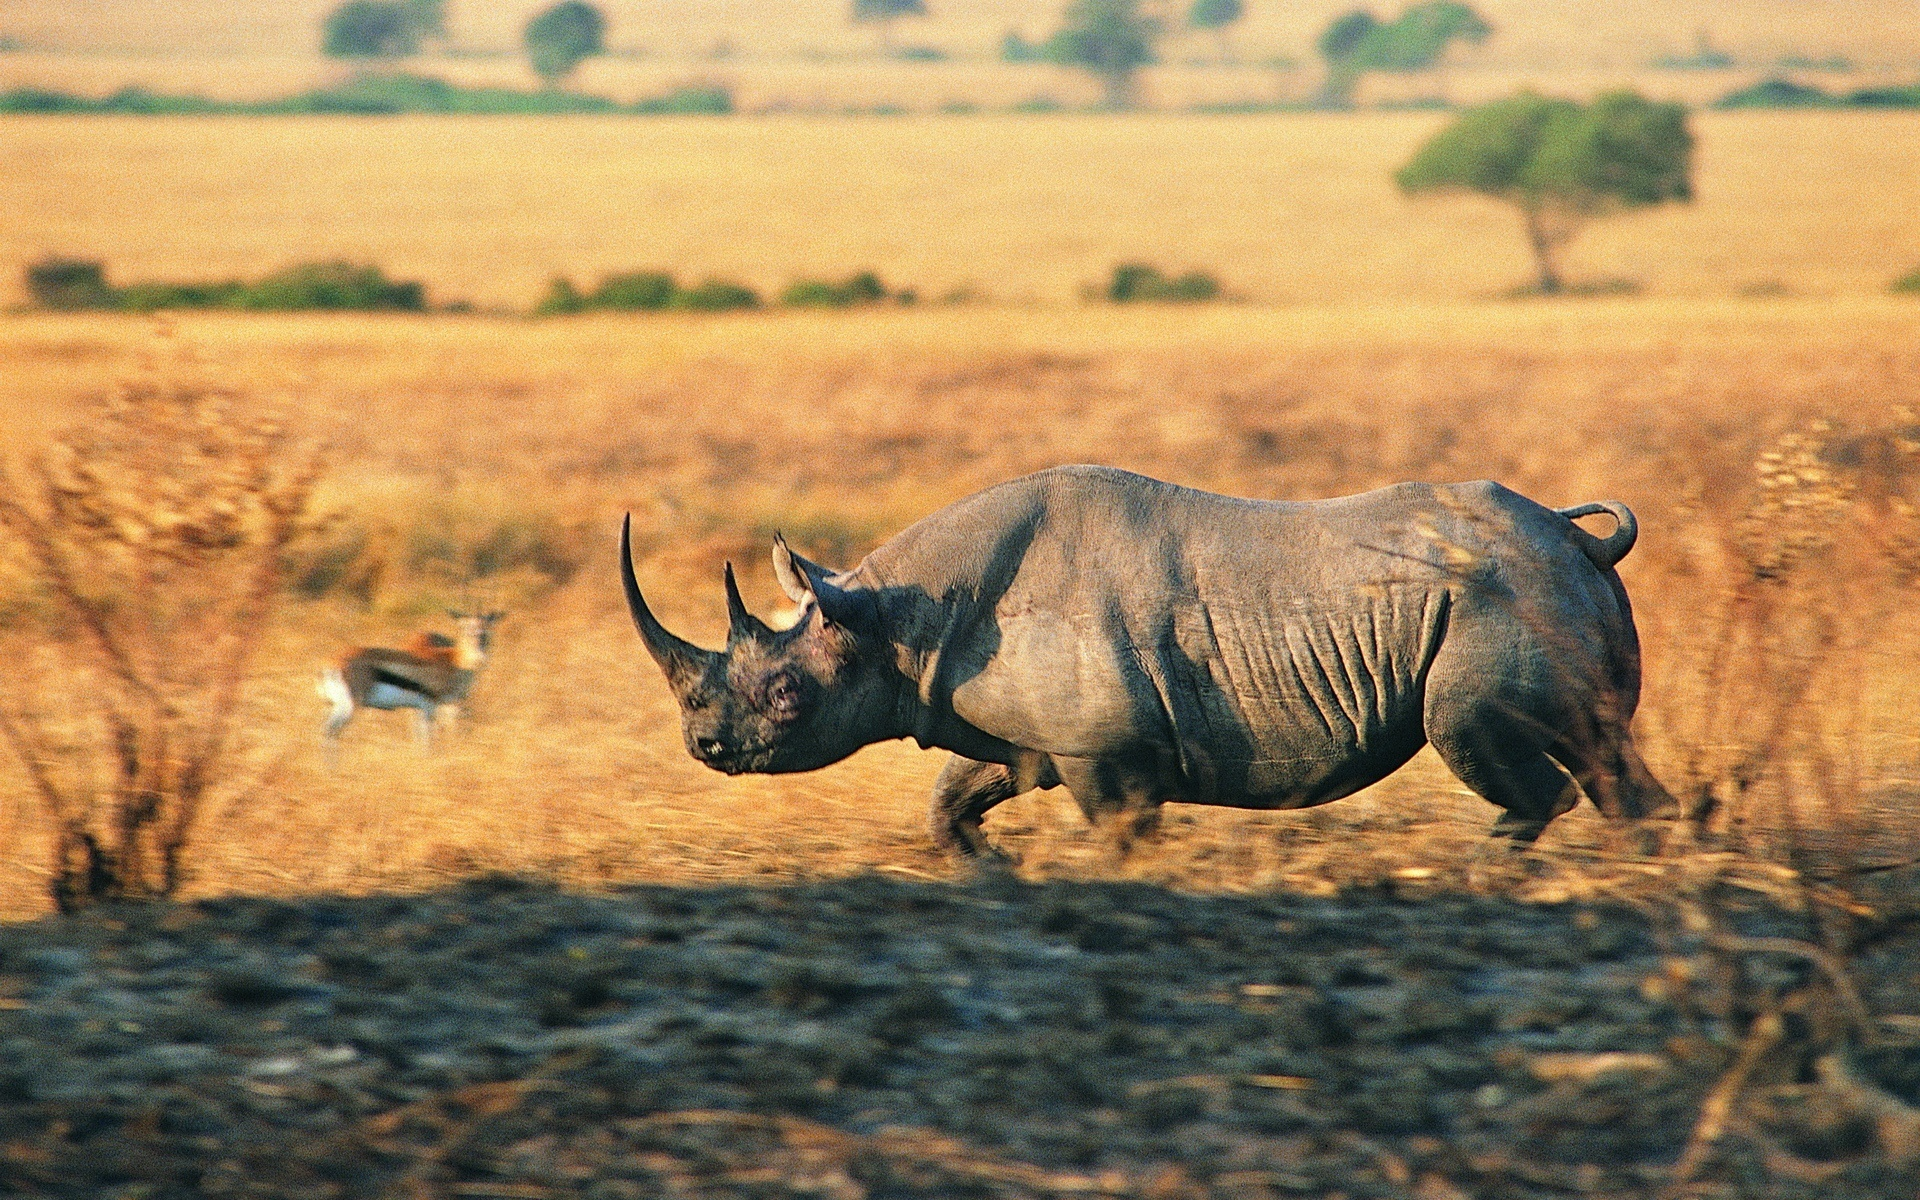 Charging Rhino Full HD Wallpaper And Background Image